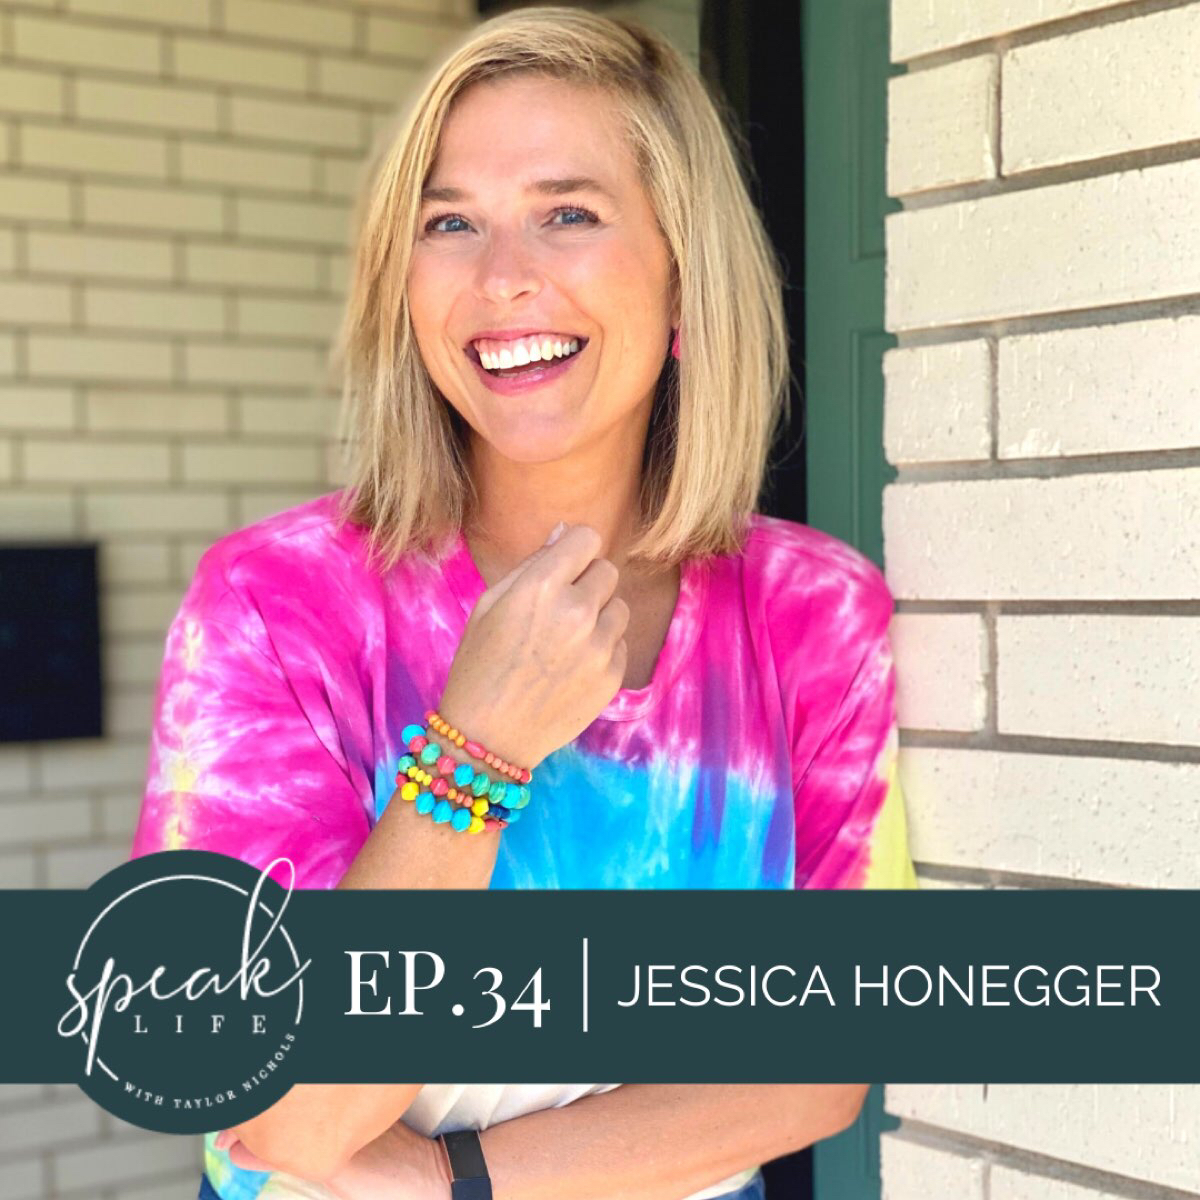 Episode 34: Jessica Honegger – From 'feeling stuck' to 'going scared'